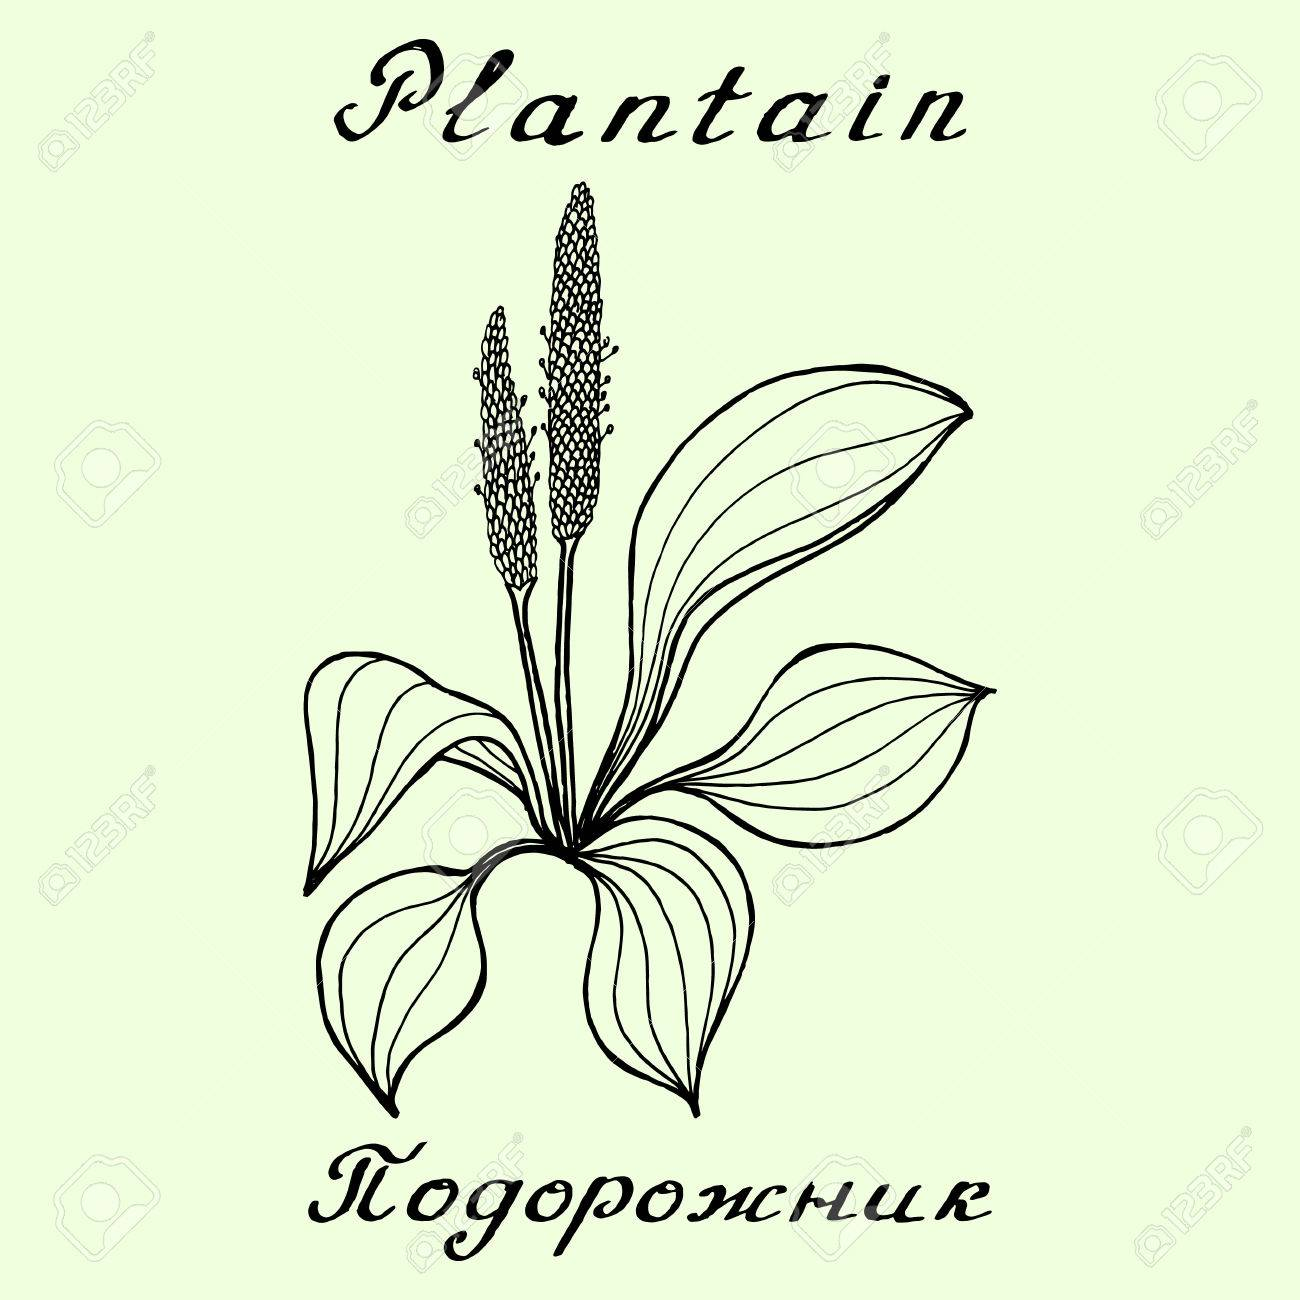 1300x1300 Plantain. Ink Drawing And Lettering. English And Russian Texts